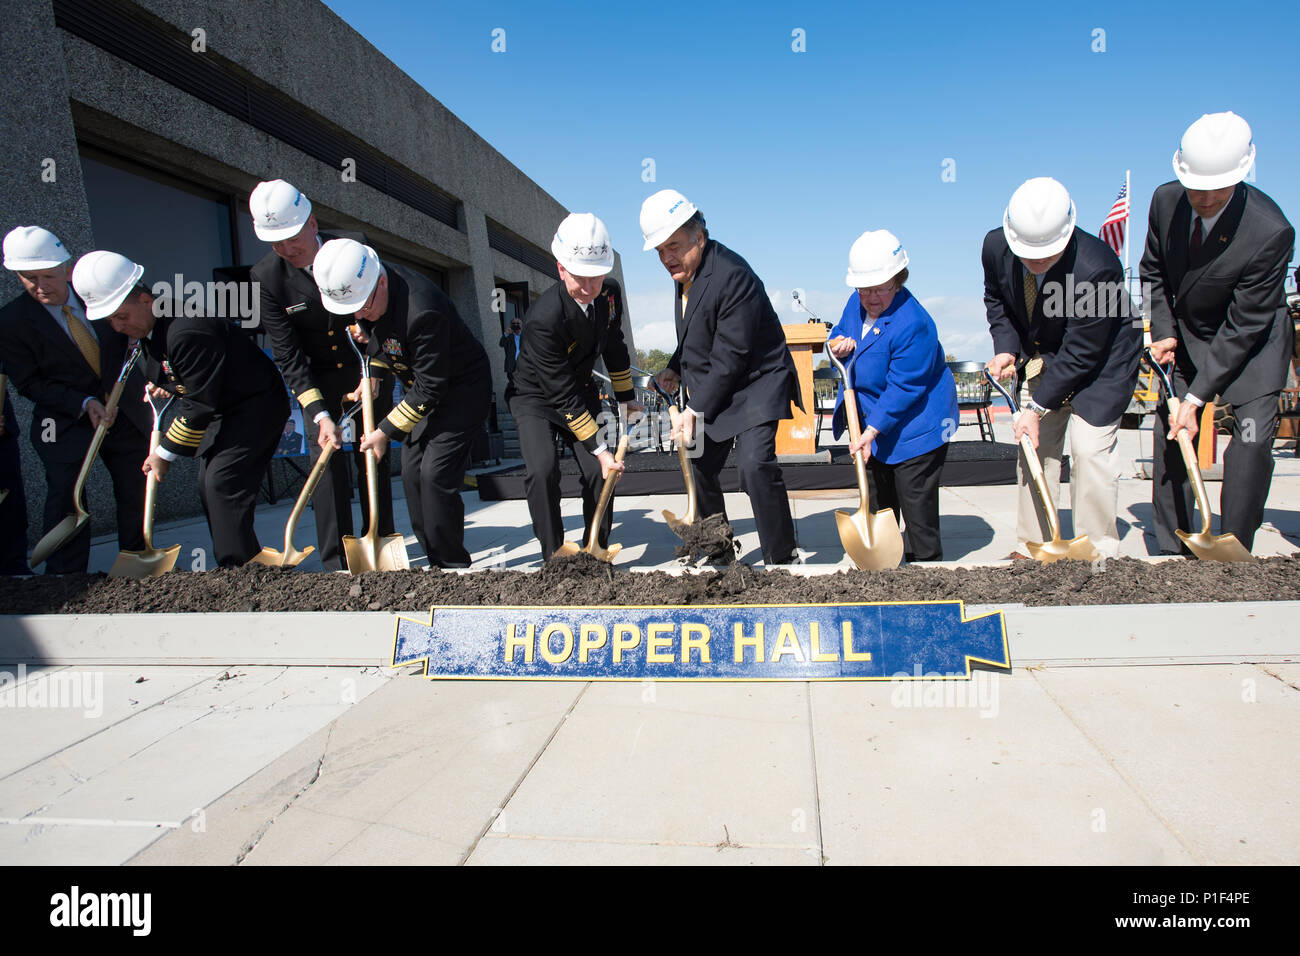 161021-N-DY073-080  ANNAPOLIS, Md. (Oct. 21, 2016) The official part The official party of the Hopper Hall ground breaking ceremony at the United States Naval Academy (USNA) dig out a scoop of dirt. Hopper Hall, which will house USNA's Center for Cyber Studies, is the namesake of Rear Adm. Grace Hopper who is often referred to as 'The Mother of Computing'. (U.S. Navy photo by Petty Officer 3rd Class Brianna Jones/Released) - Stock Image